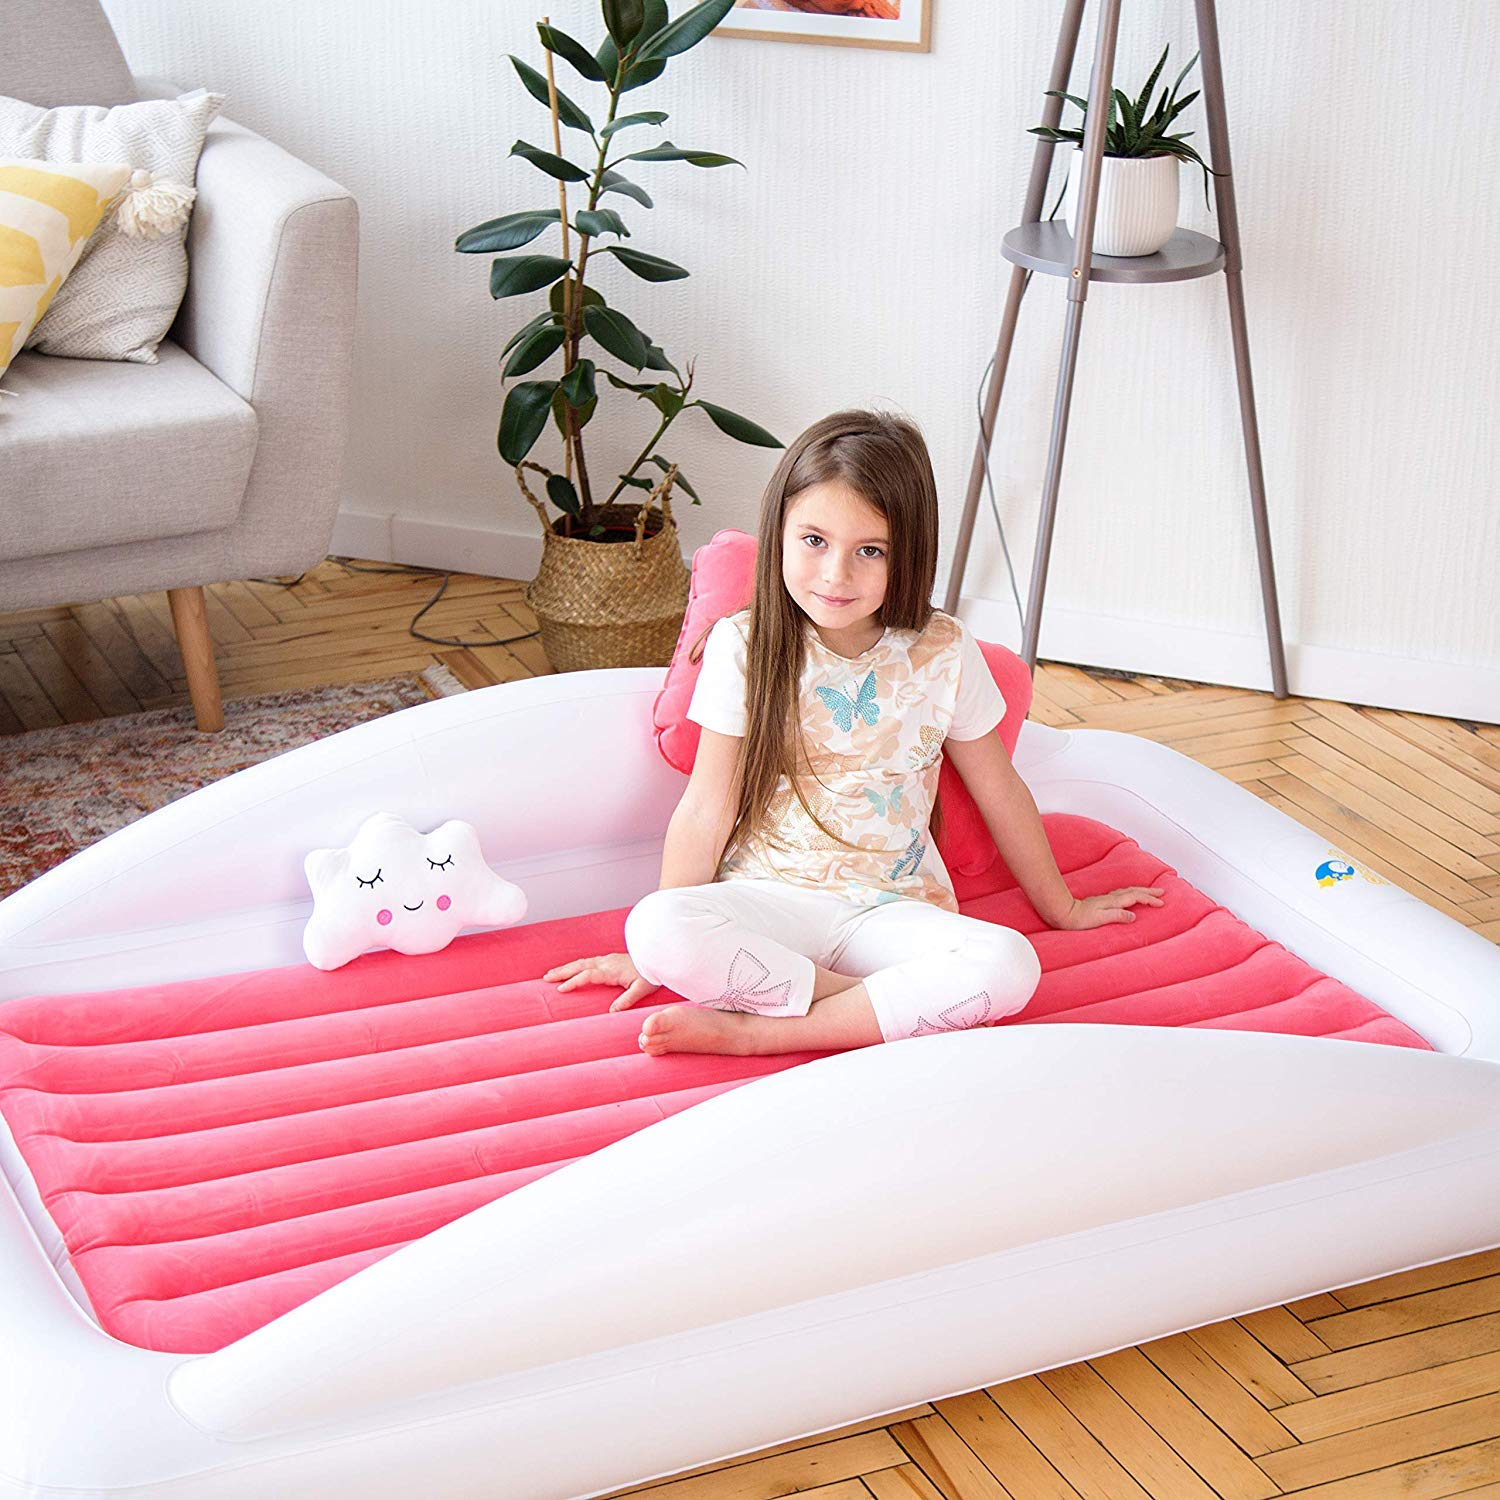 Blow up Mattress for Kids with High Safety Bed Rails Inflatable /& Portable Bed Air Mattress Set Sleepah Inflatable Toddler Travel Bed Aquamarine Case Set Includes Pump Pillow /& Plush Toy